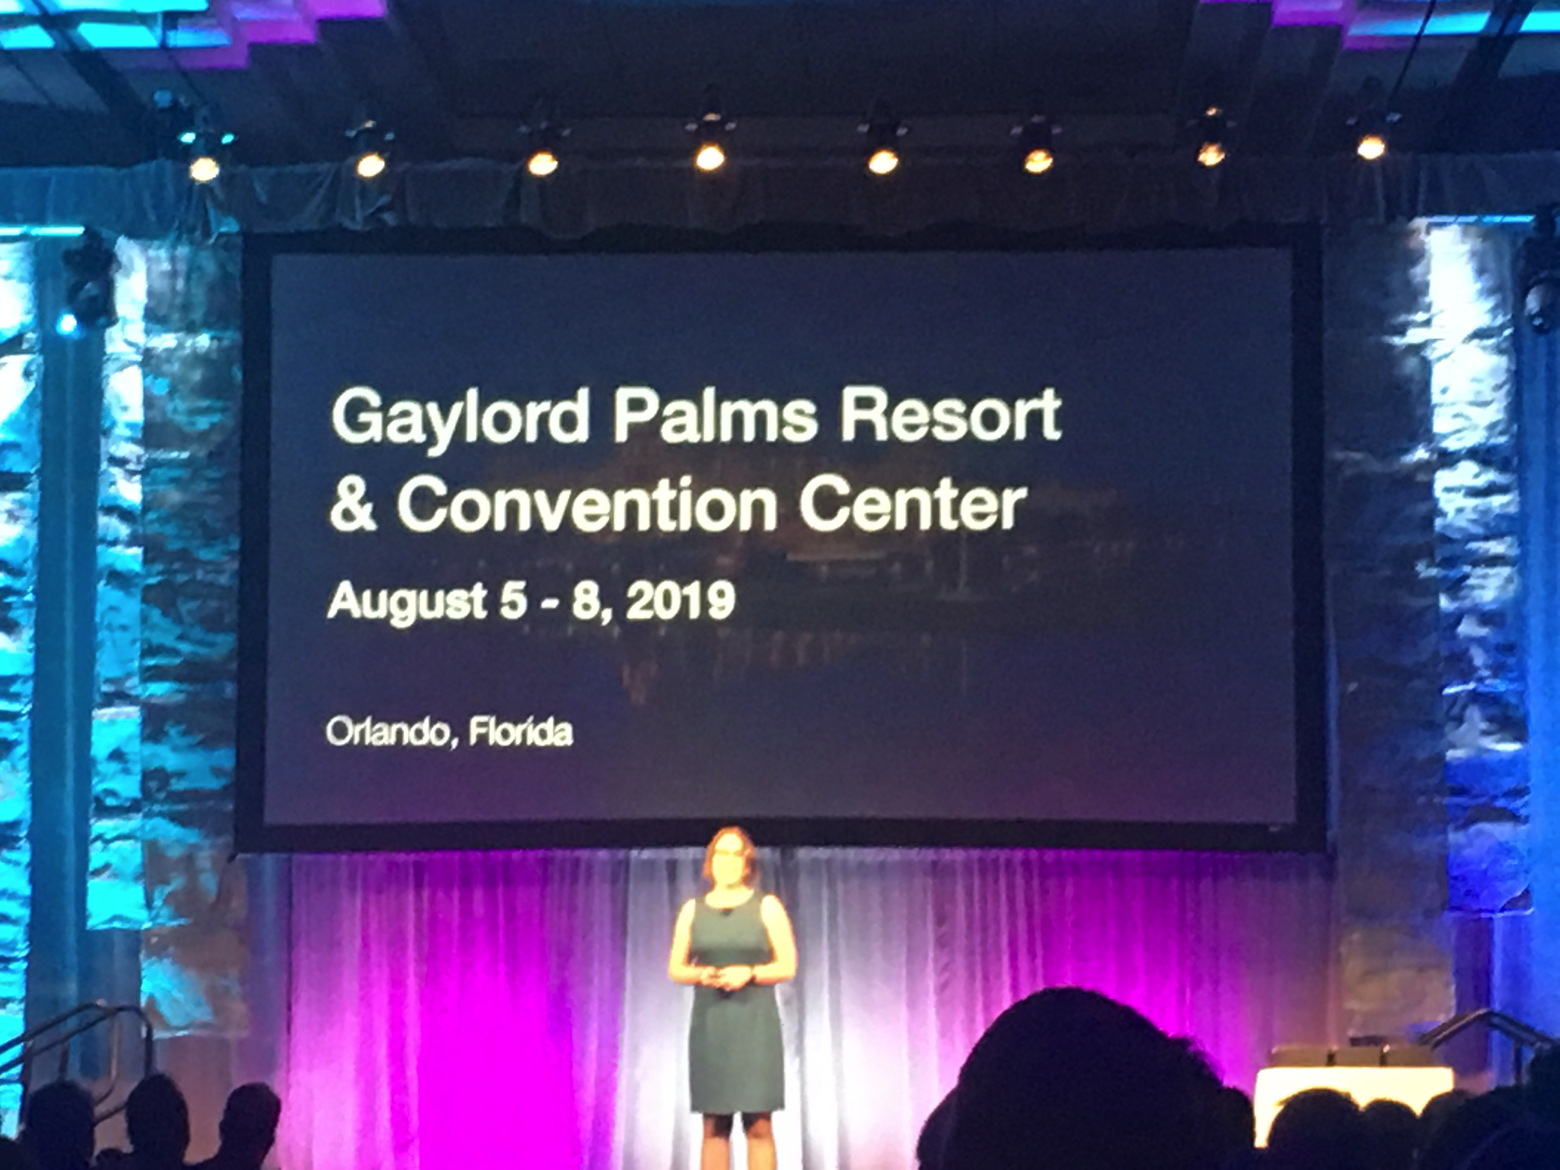 MBS Blog - See you at the next FileMaker DevCon